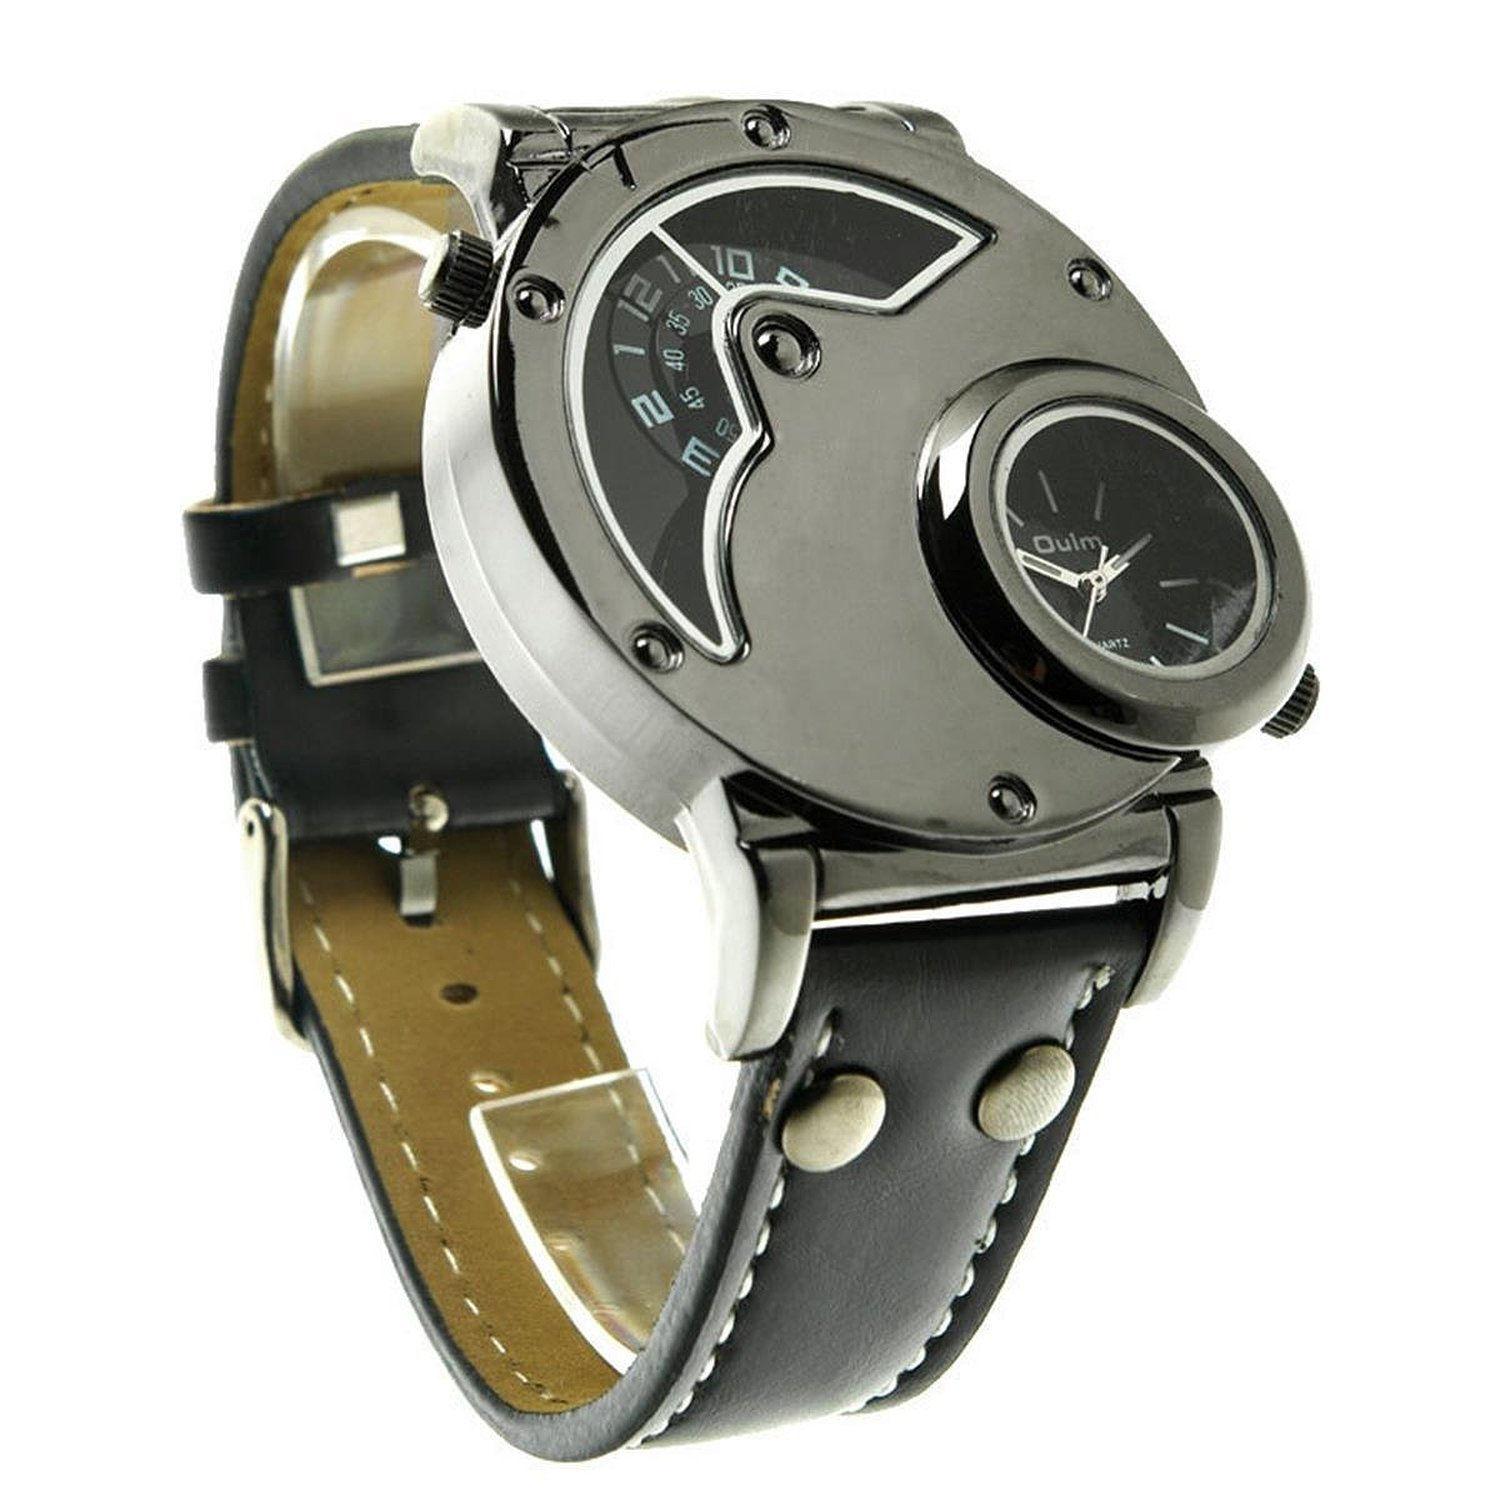 New Russian Aviator Pilot Army Military Watch